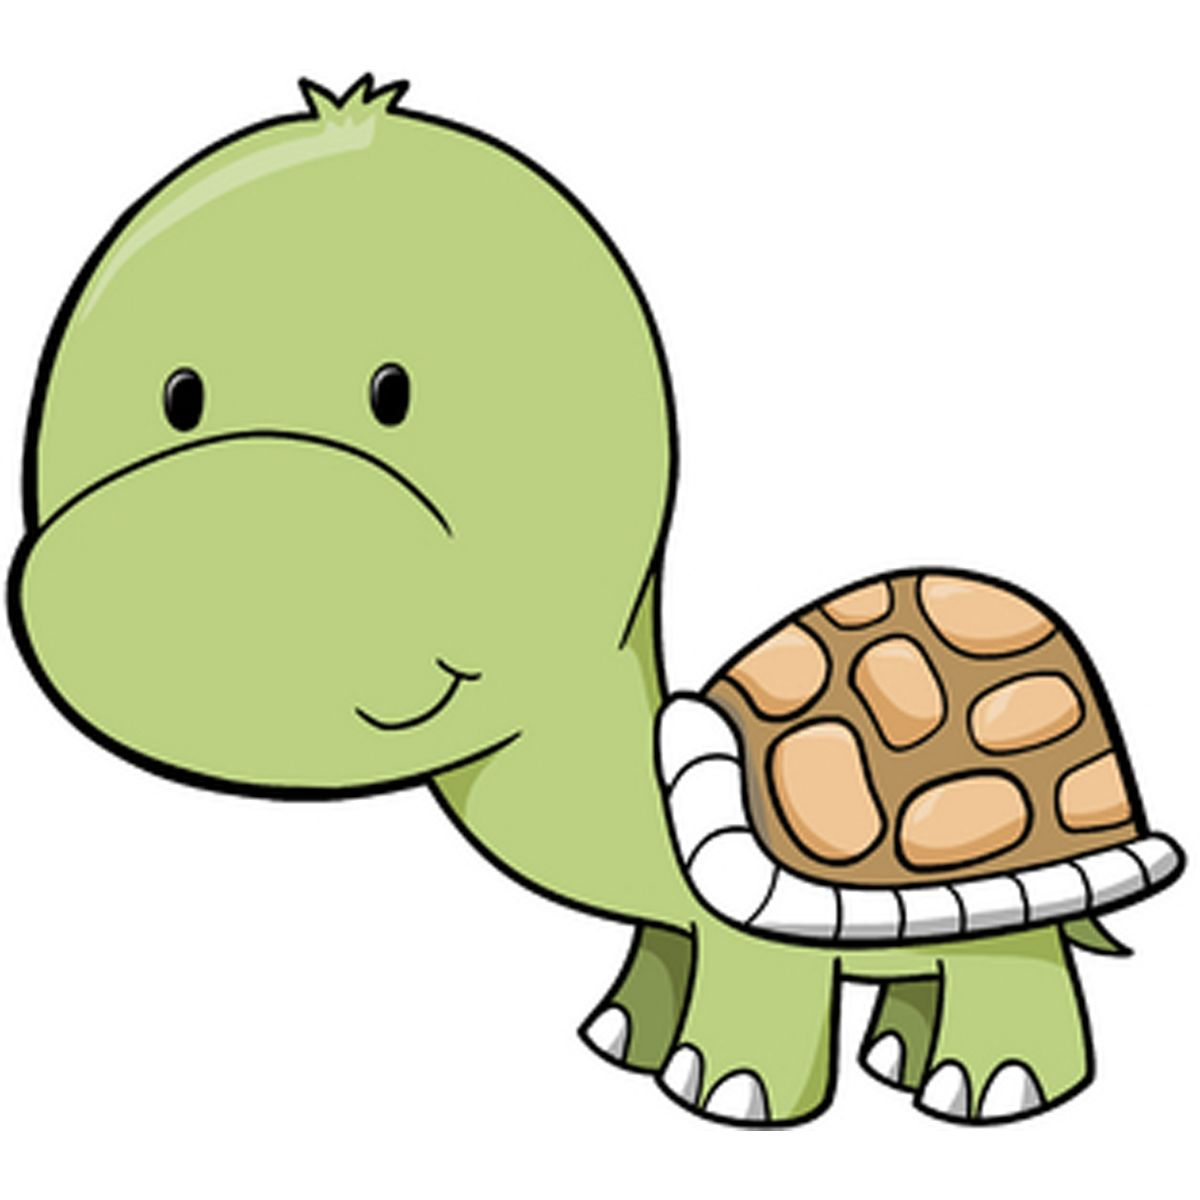 turtle | Cute | Cute baby turtles, Baby turtles, Cartoon ...